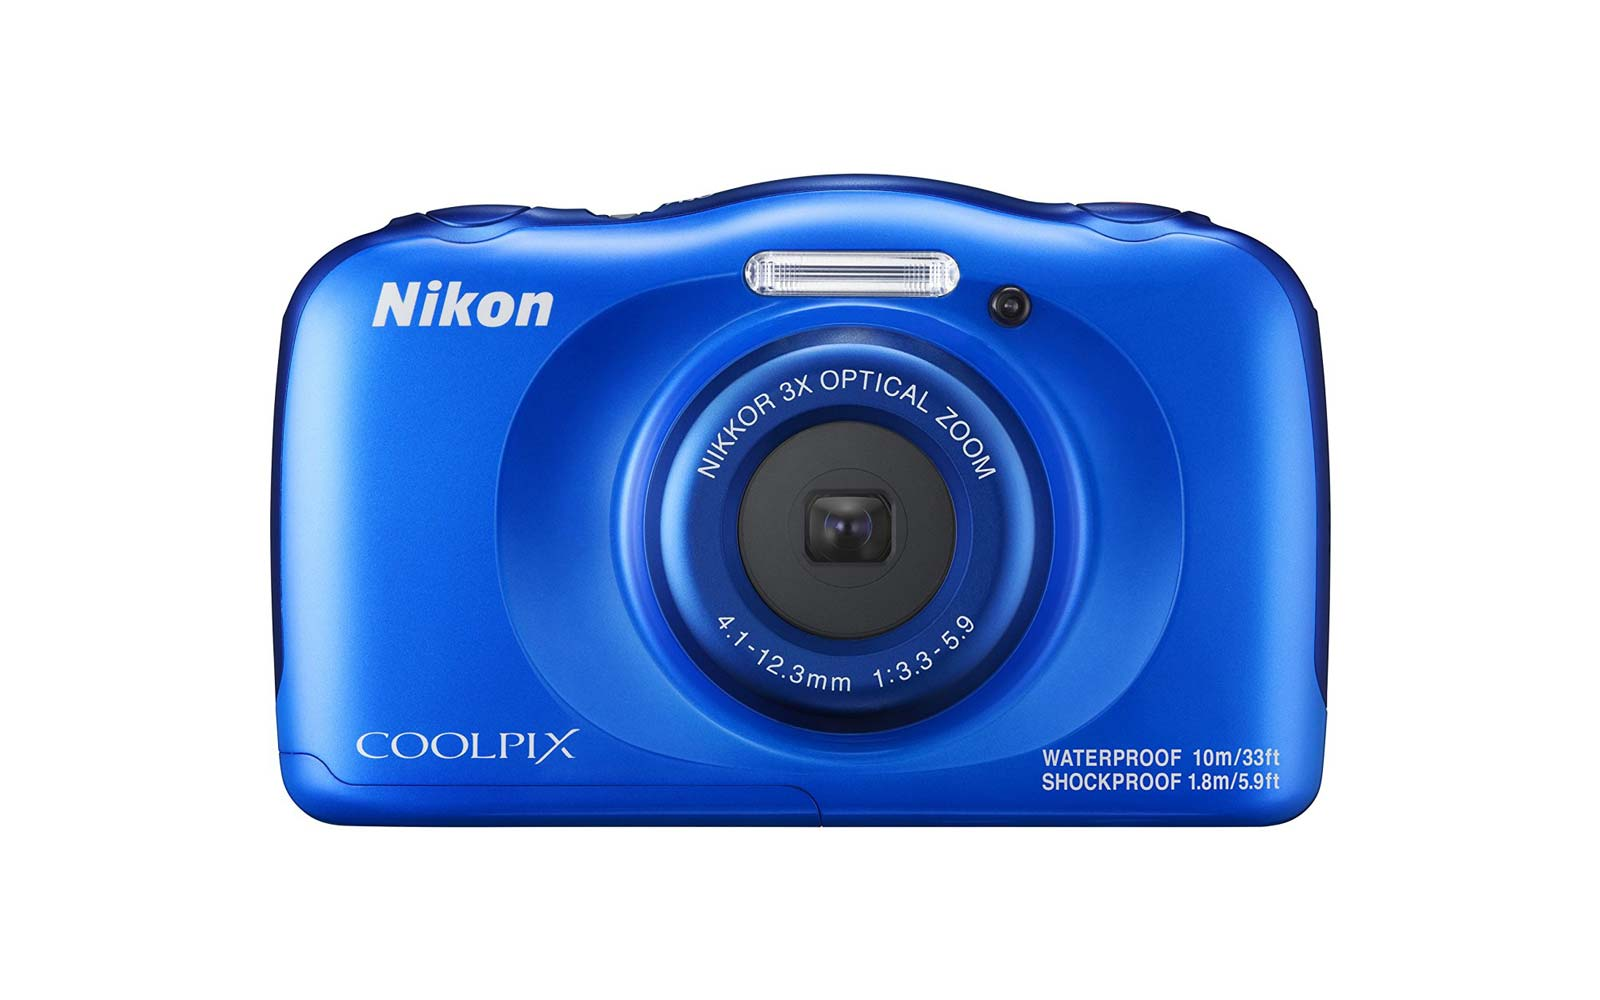 Nikon CoolPix W100 Waterproof